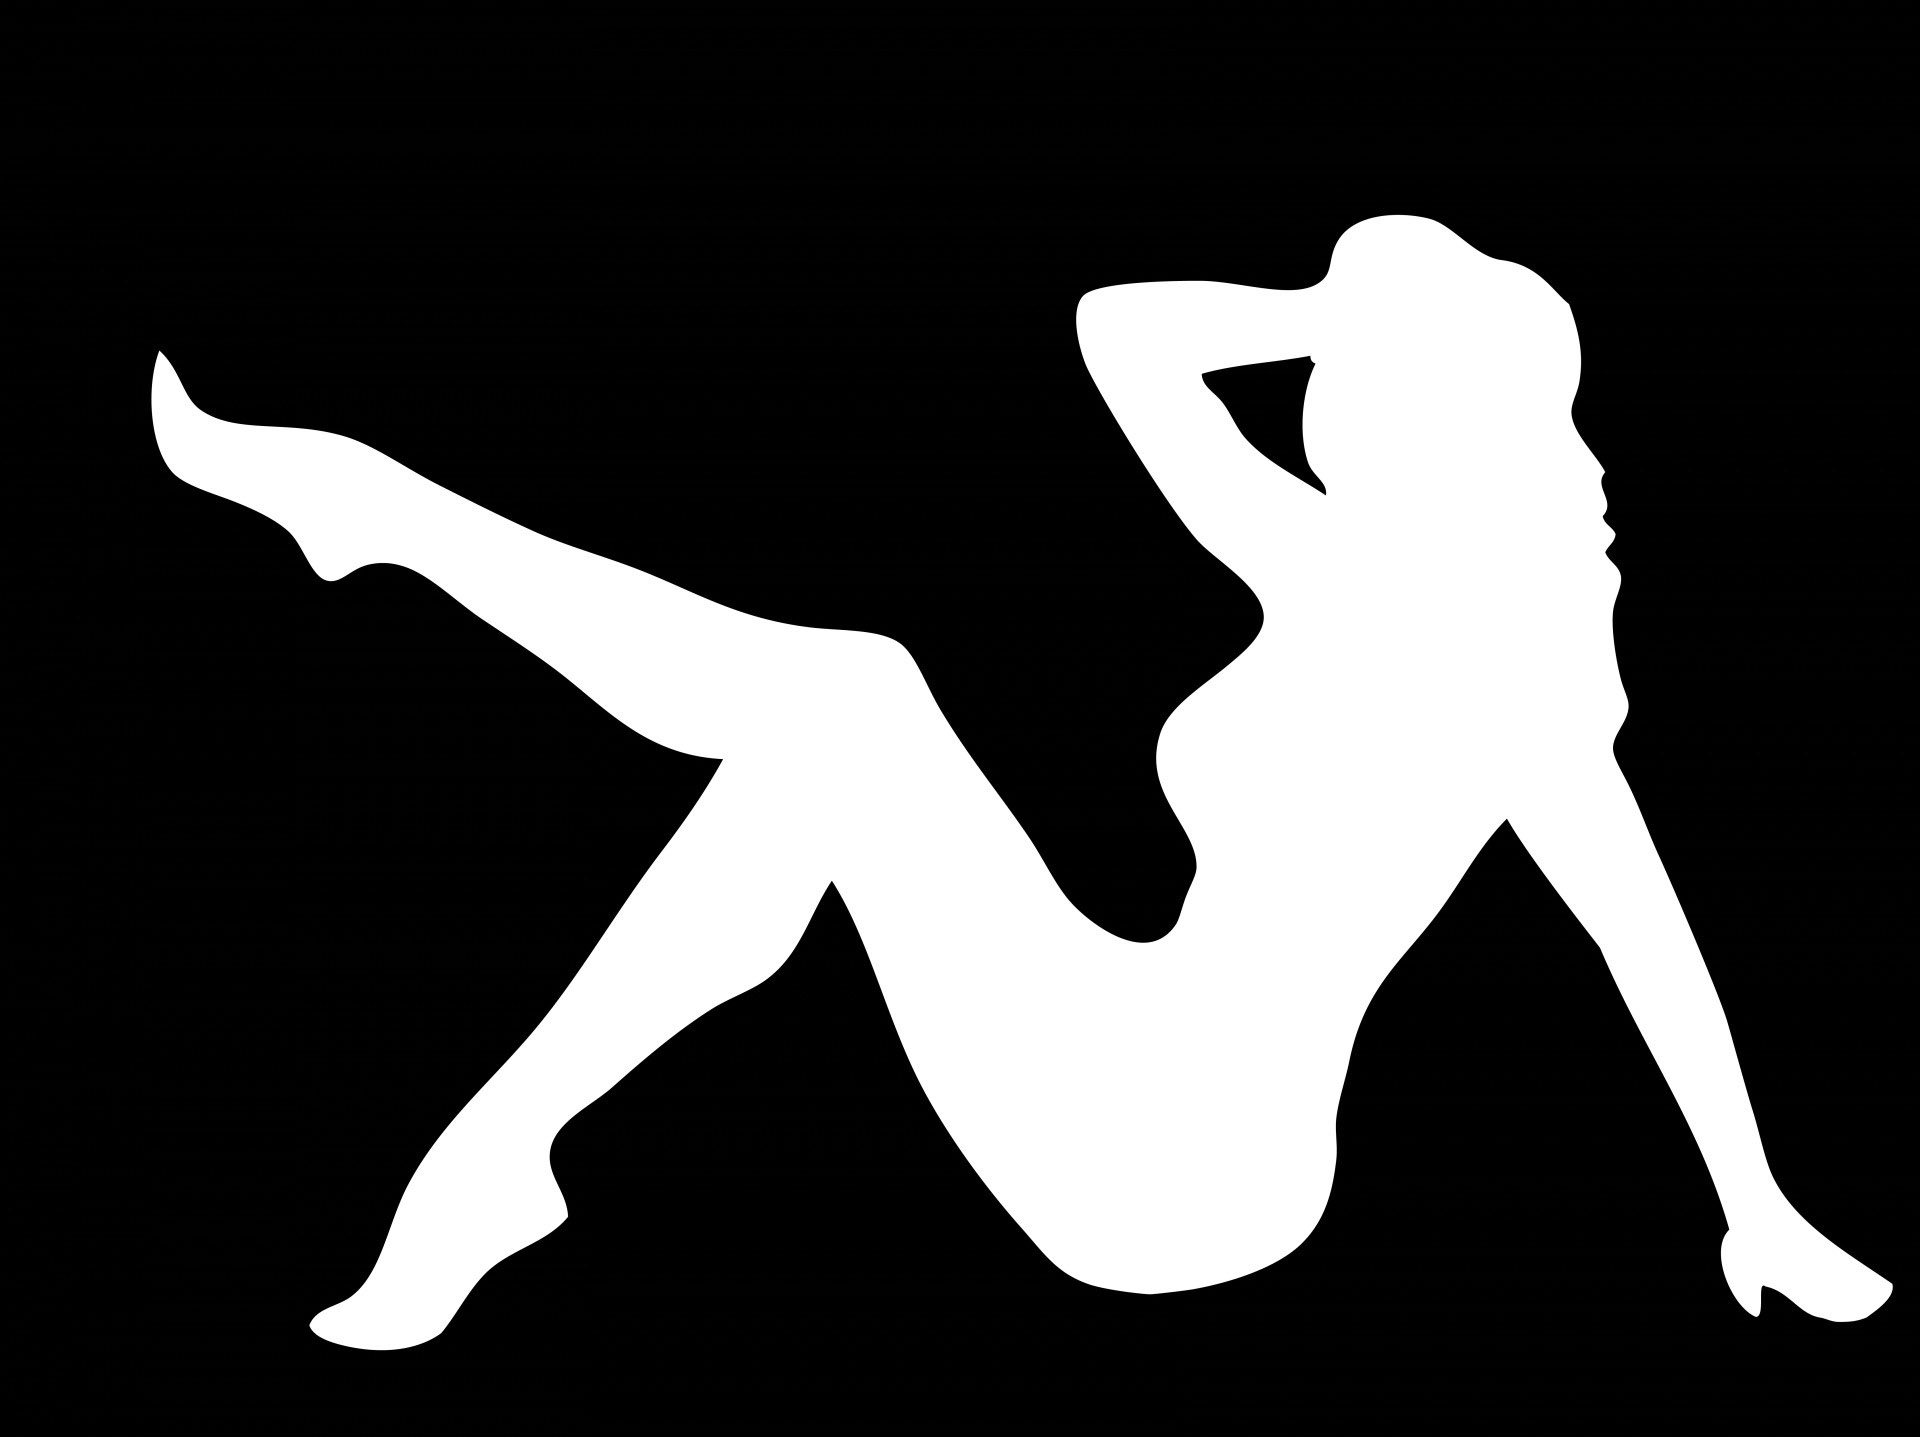 pin up silhouette hd pin up girl silhouette cdr up silhouette pin